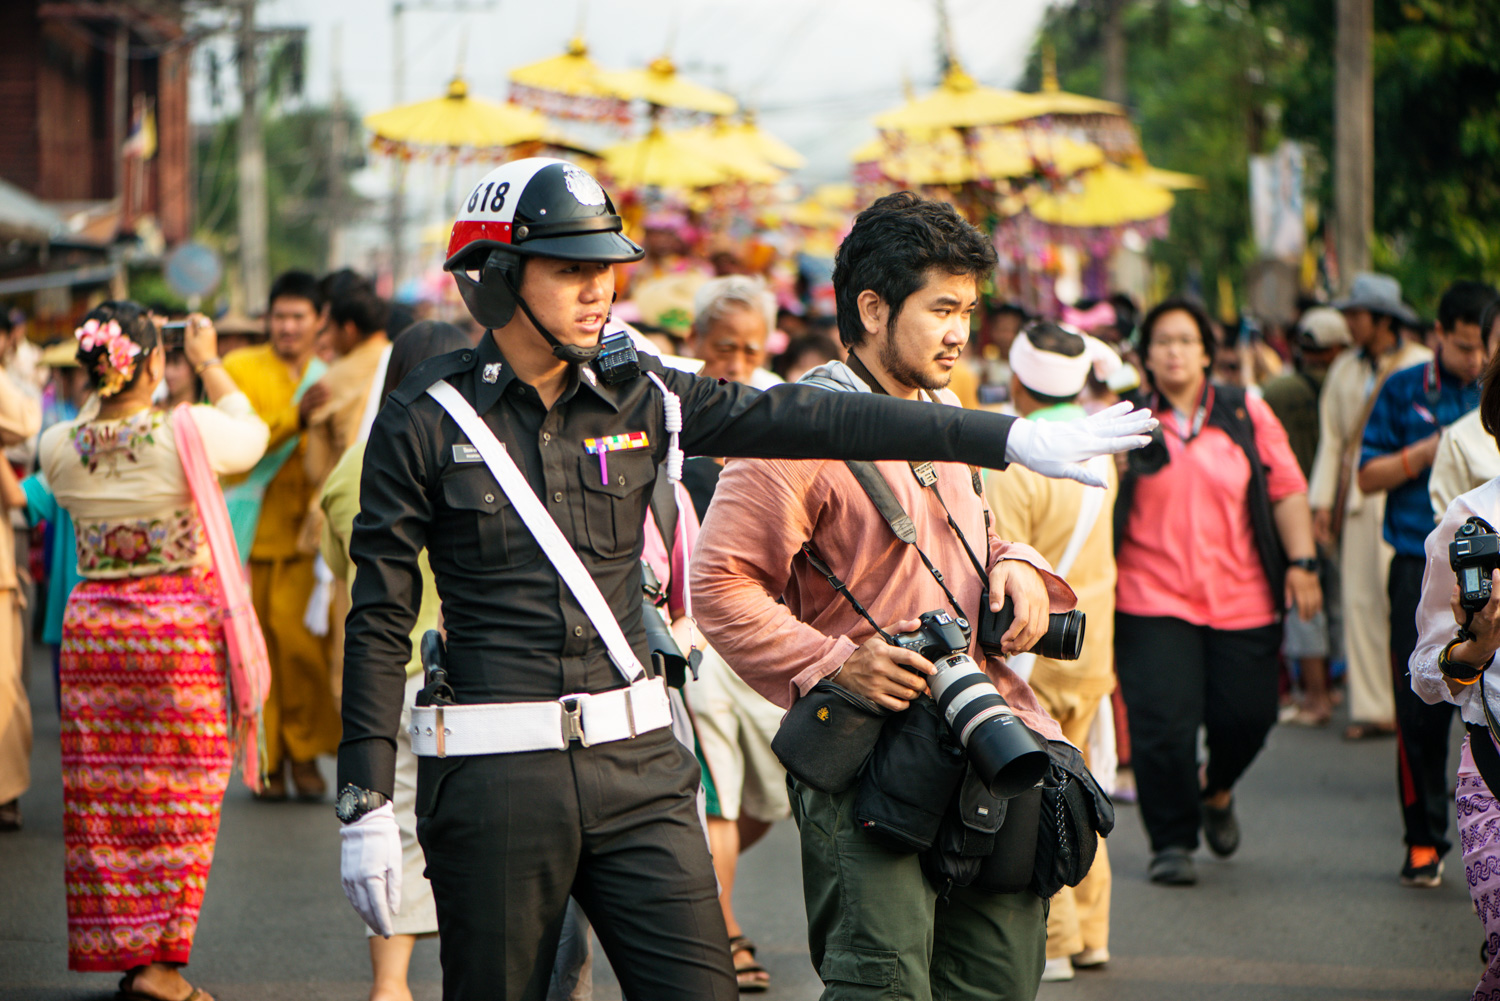 Poi Sang Long Festival Photographer- Pros and Cons of Upgrading from a Phone to a Real Camera